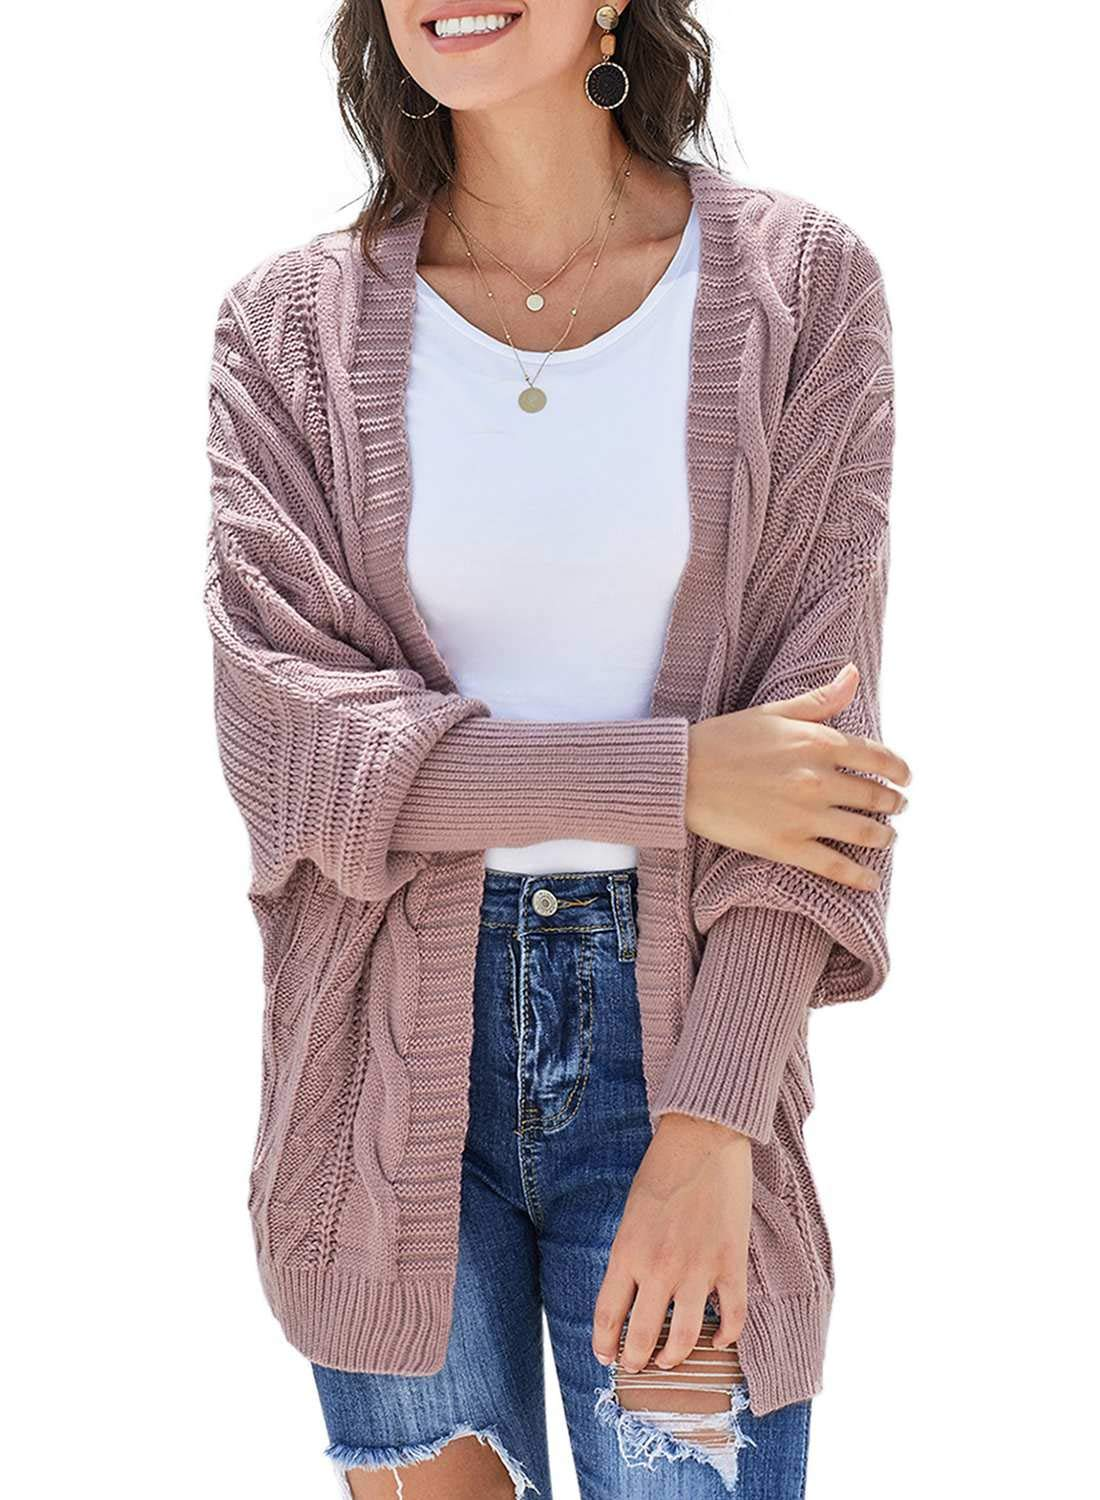 Dearlove Womens Oversized Batwing Sleeve Open Front Chunky Cable Knit Cardigan Sweaters Outerwear Winter Cozy Coat Small Pink by Dearlove